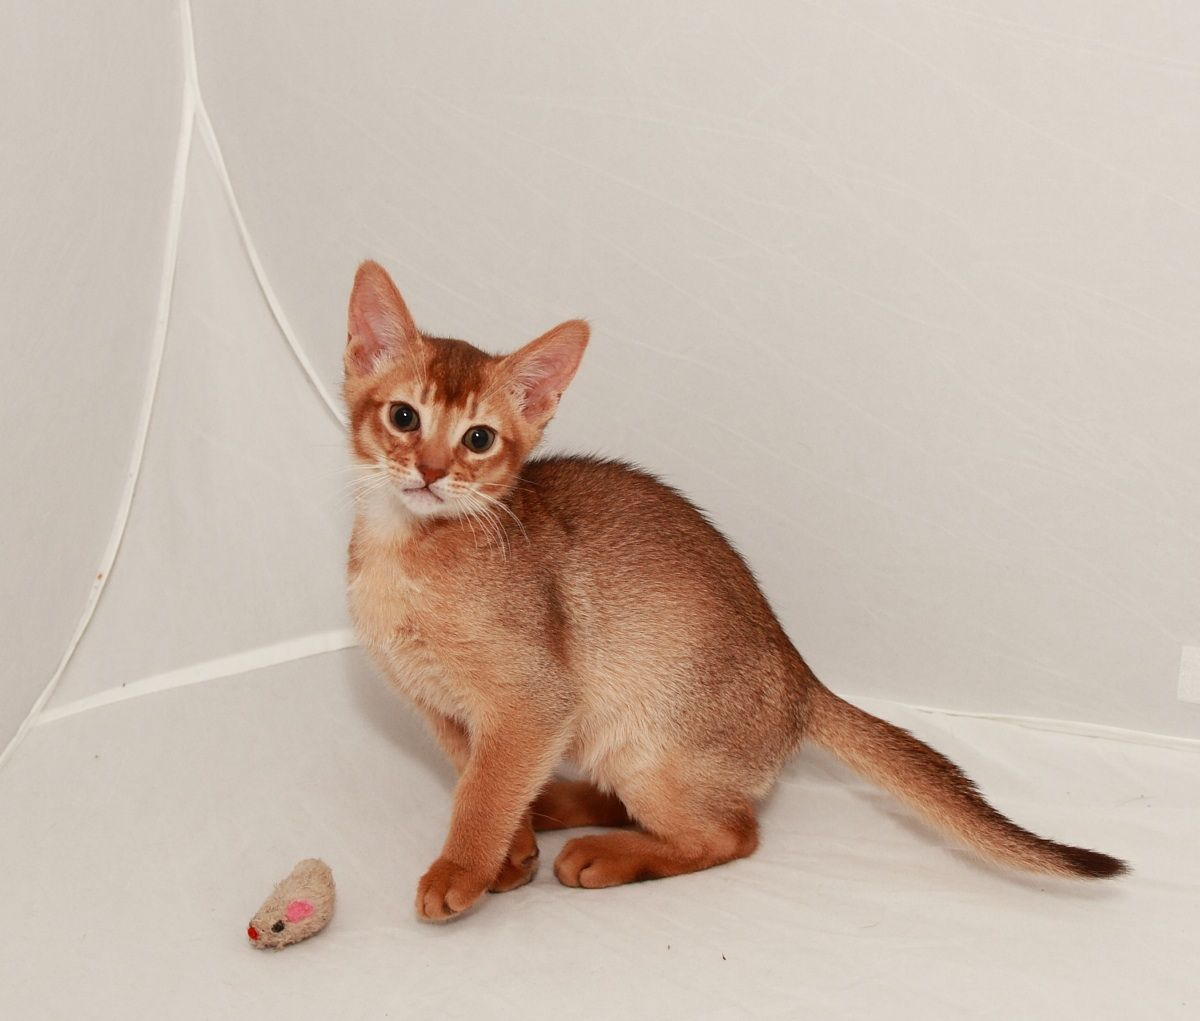 50 Very Cute Abyssinian Kitten Pictures And Photos